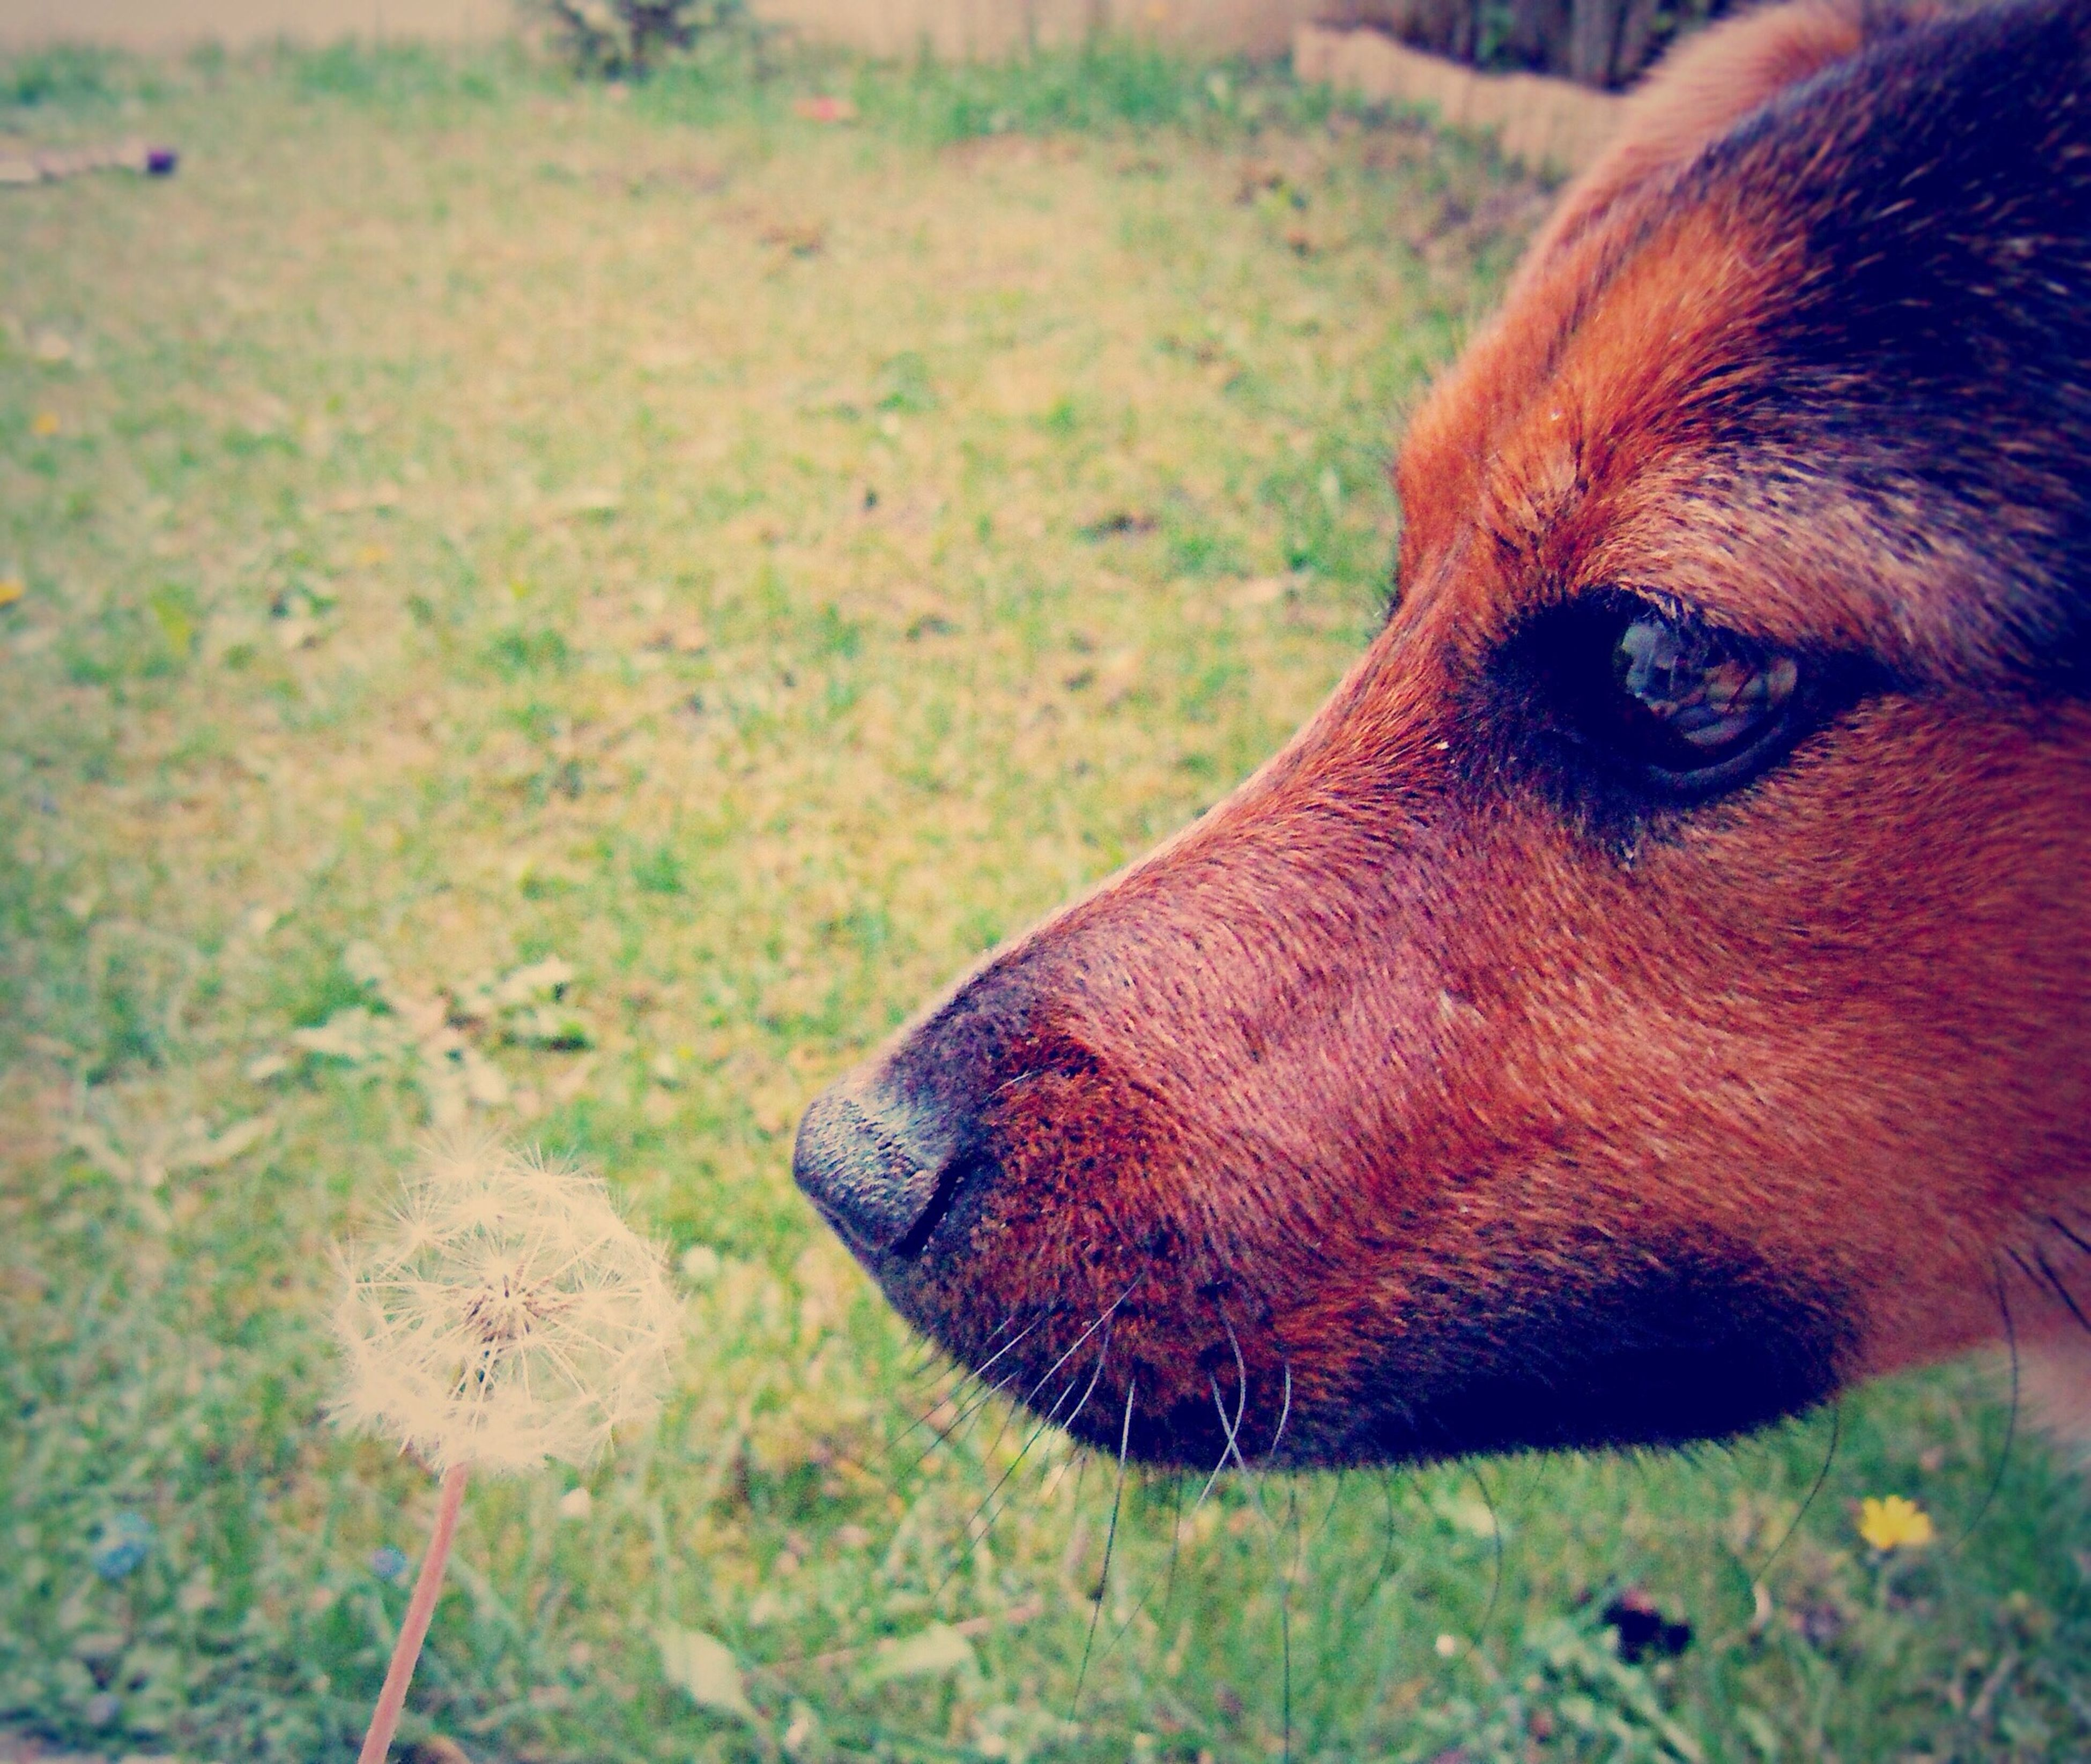 animal themes, one animal, domestic animals, mammal, pets, animal head, close-up, grass, dog, focus on foreground, animal body part, field, brown, part of, looking away, day, portrait, grassy, outdoors, nature